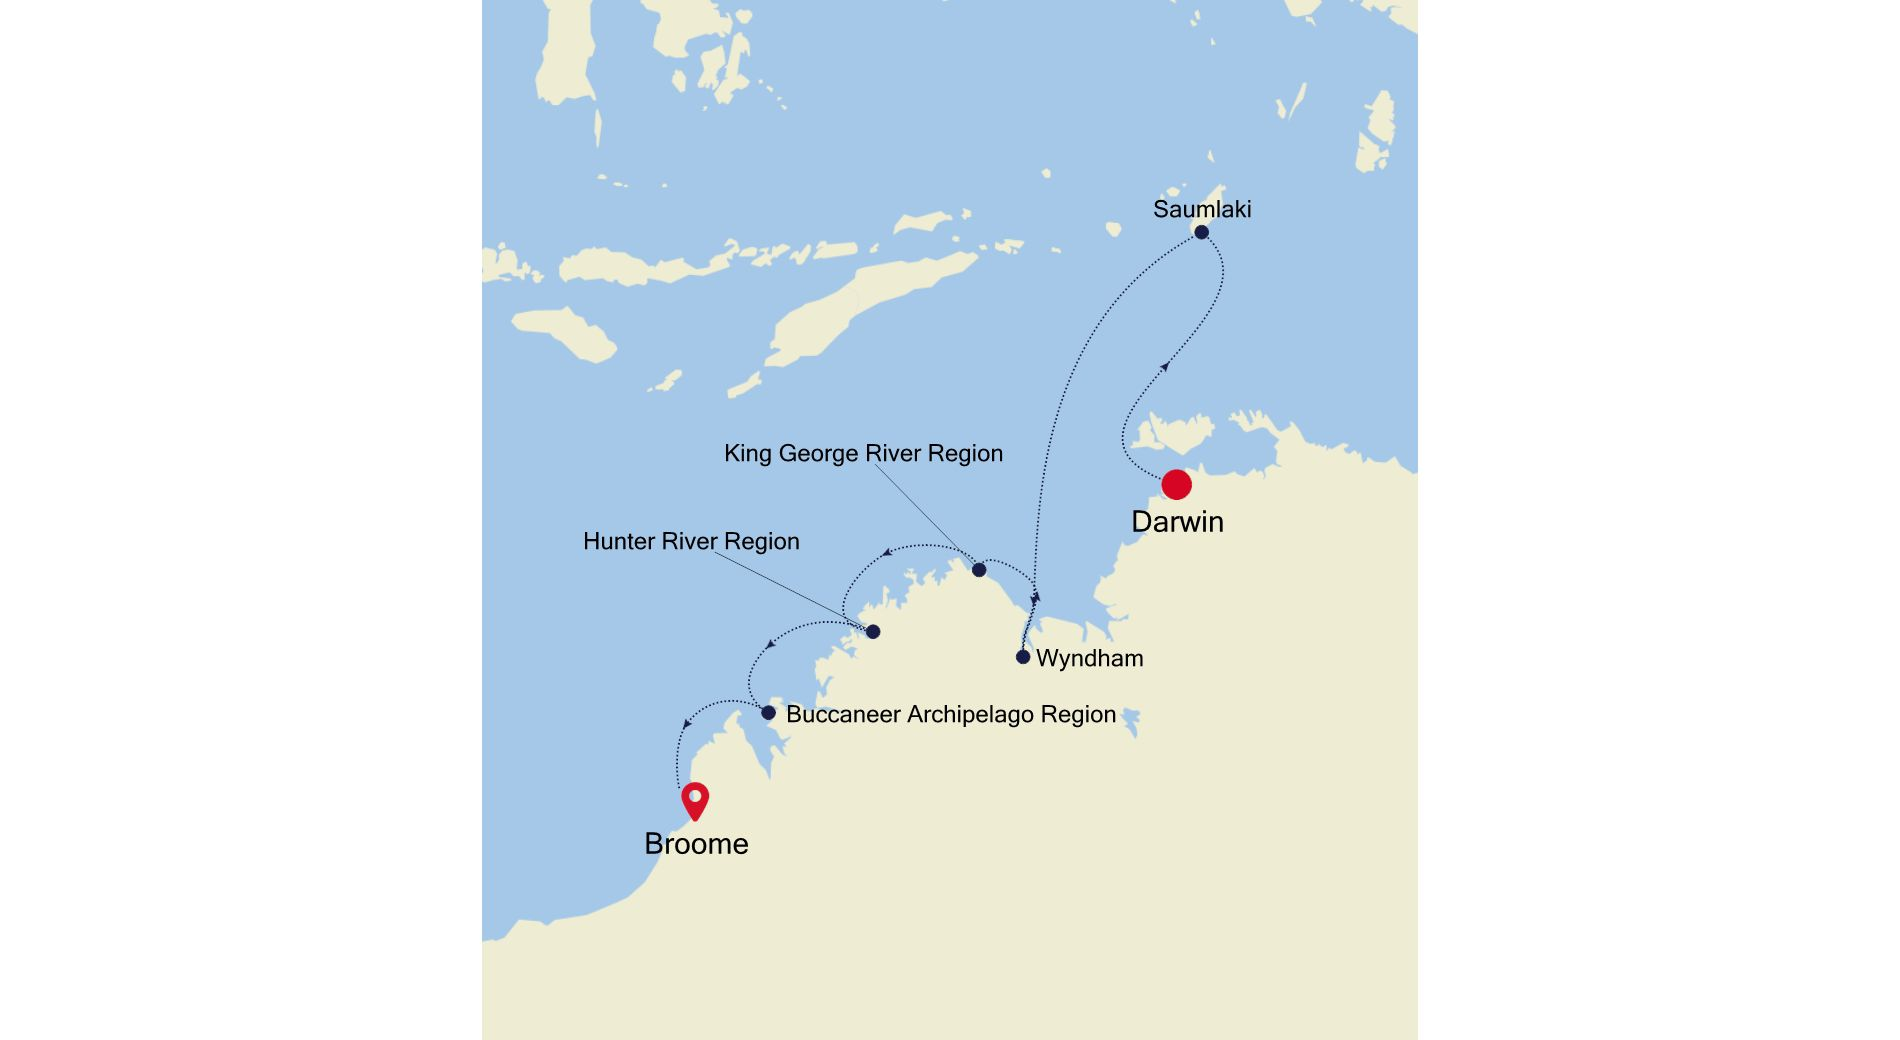 9913 - Darwin to Broome